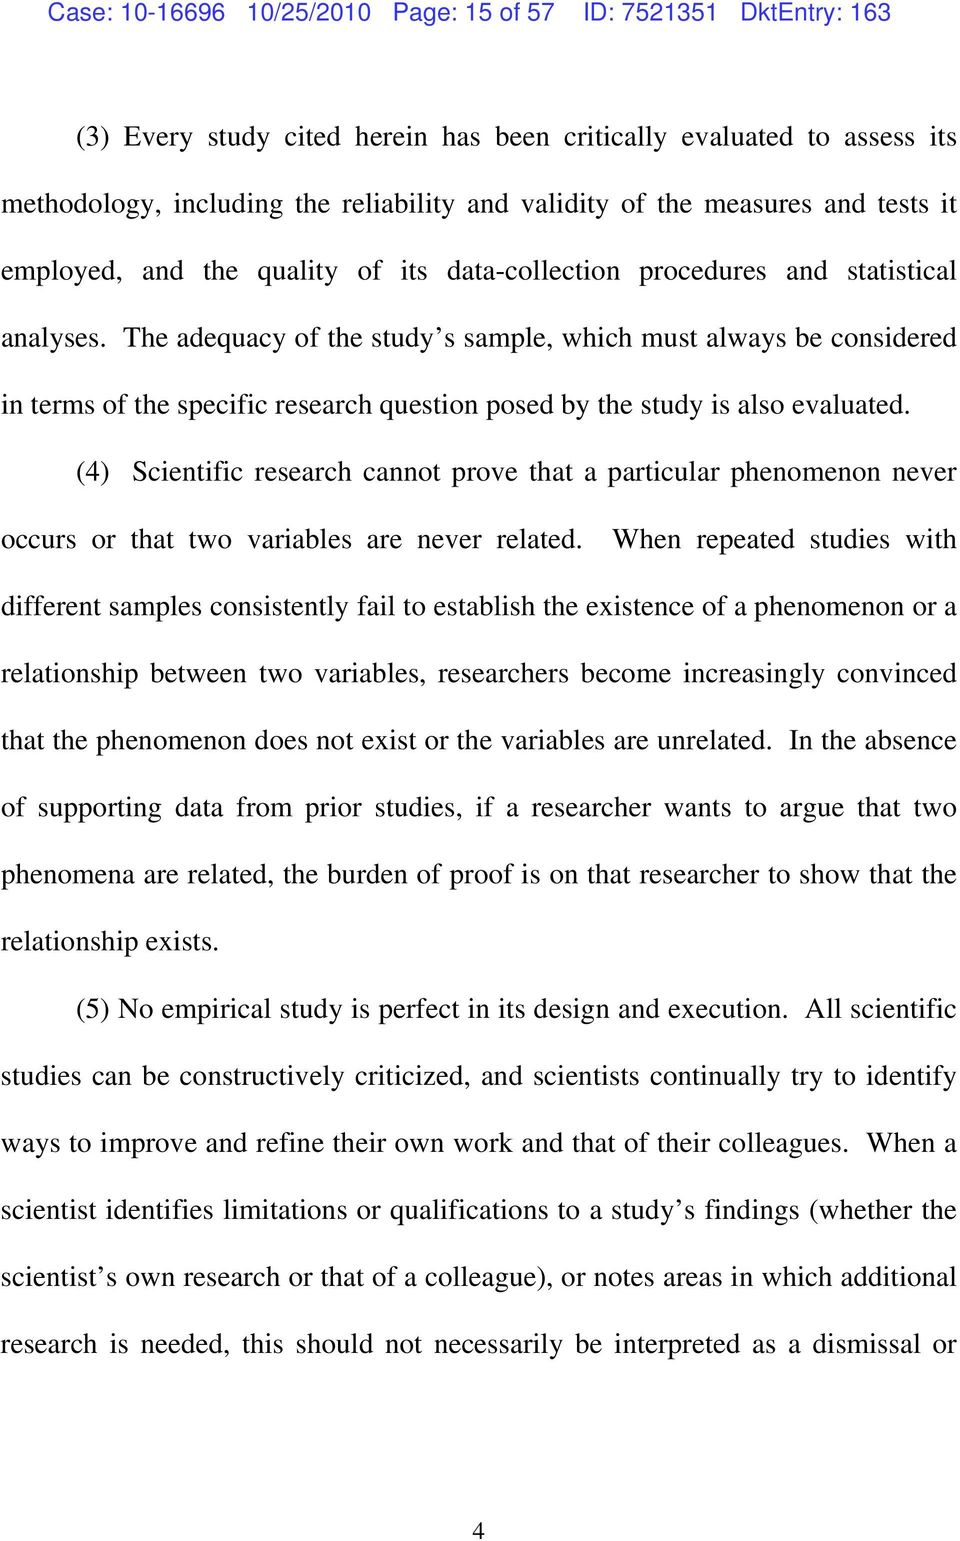 The adequacy of the study s sample, which must always be considered in terms of the specific research question posed by the study is also evaluated.